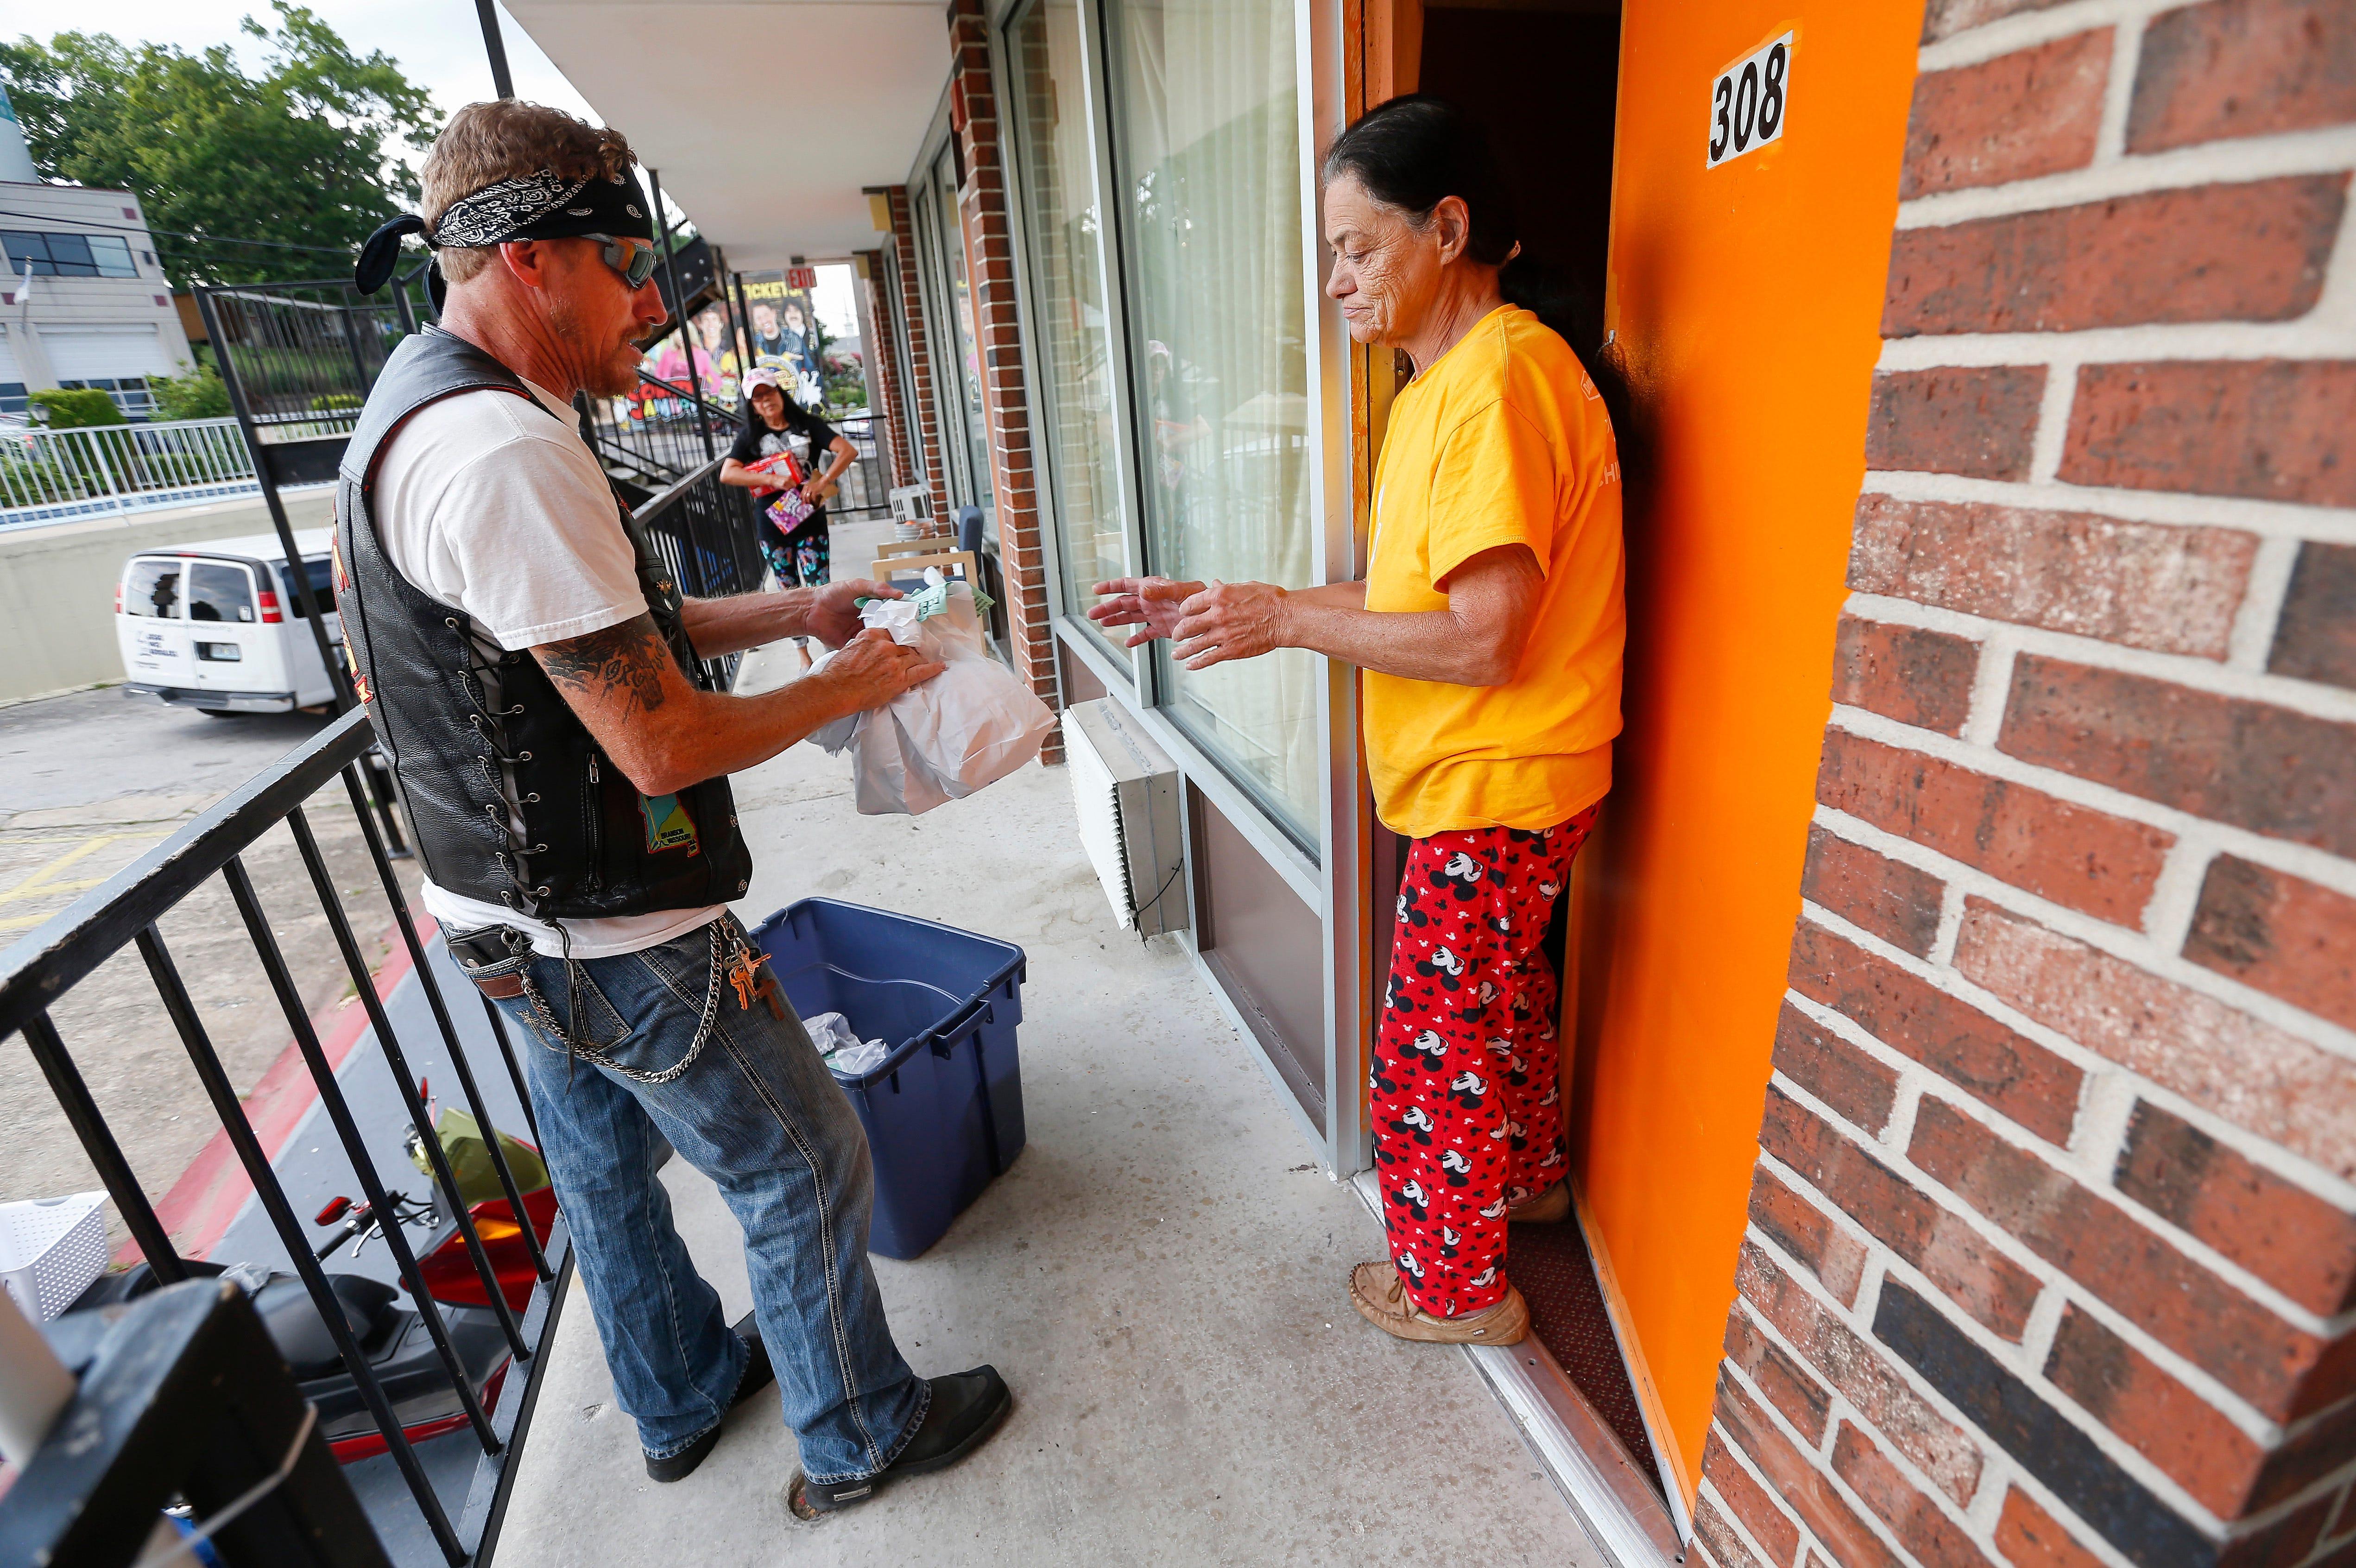 Rick Diamond, a volunteer with Jesus Was Homeless, delivers a meal to Sandy Lucas at the Branson Plaza on Thursday, July 5, 2018. Jesus Was Homeless volunteers deliver meals to residents in Branson's extended stay hotels every Thursday.